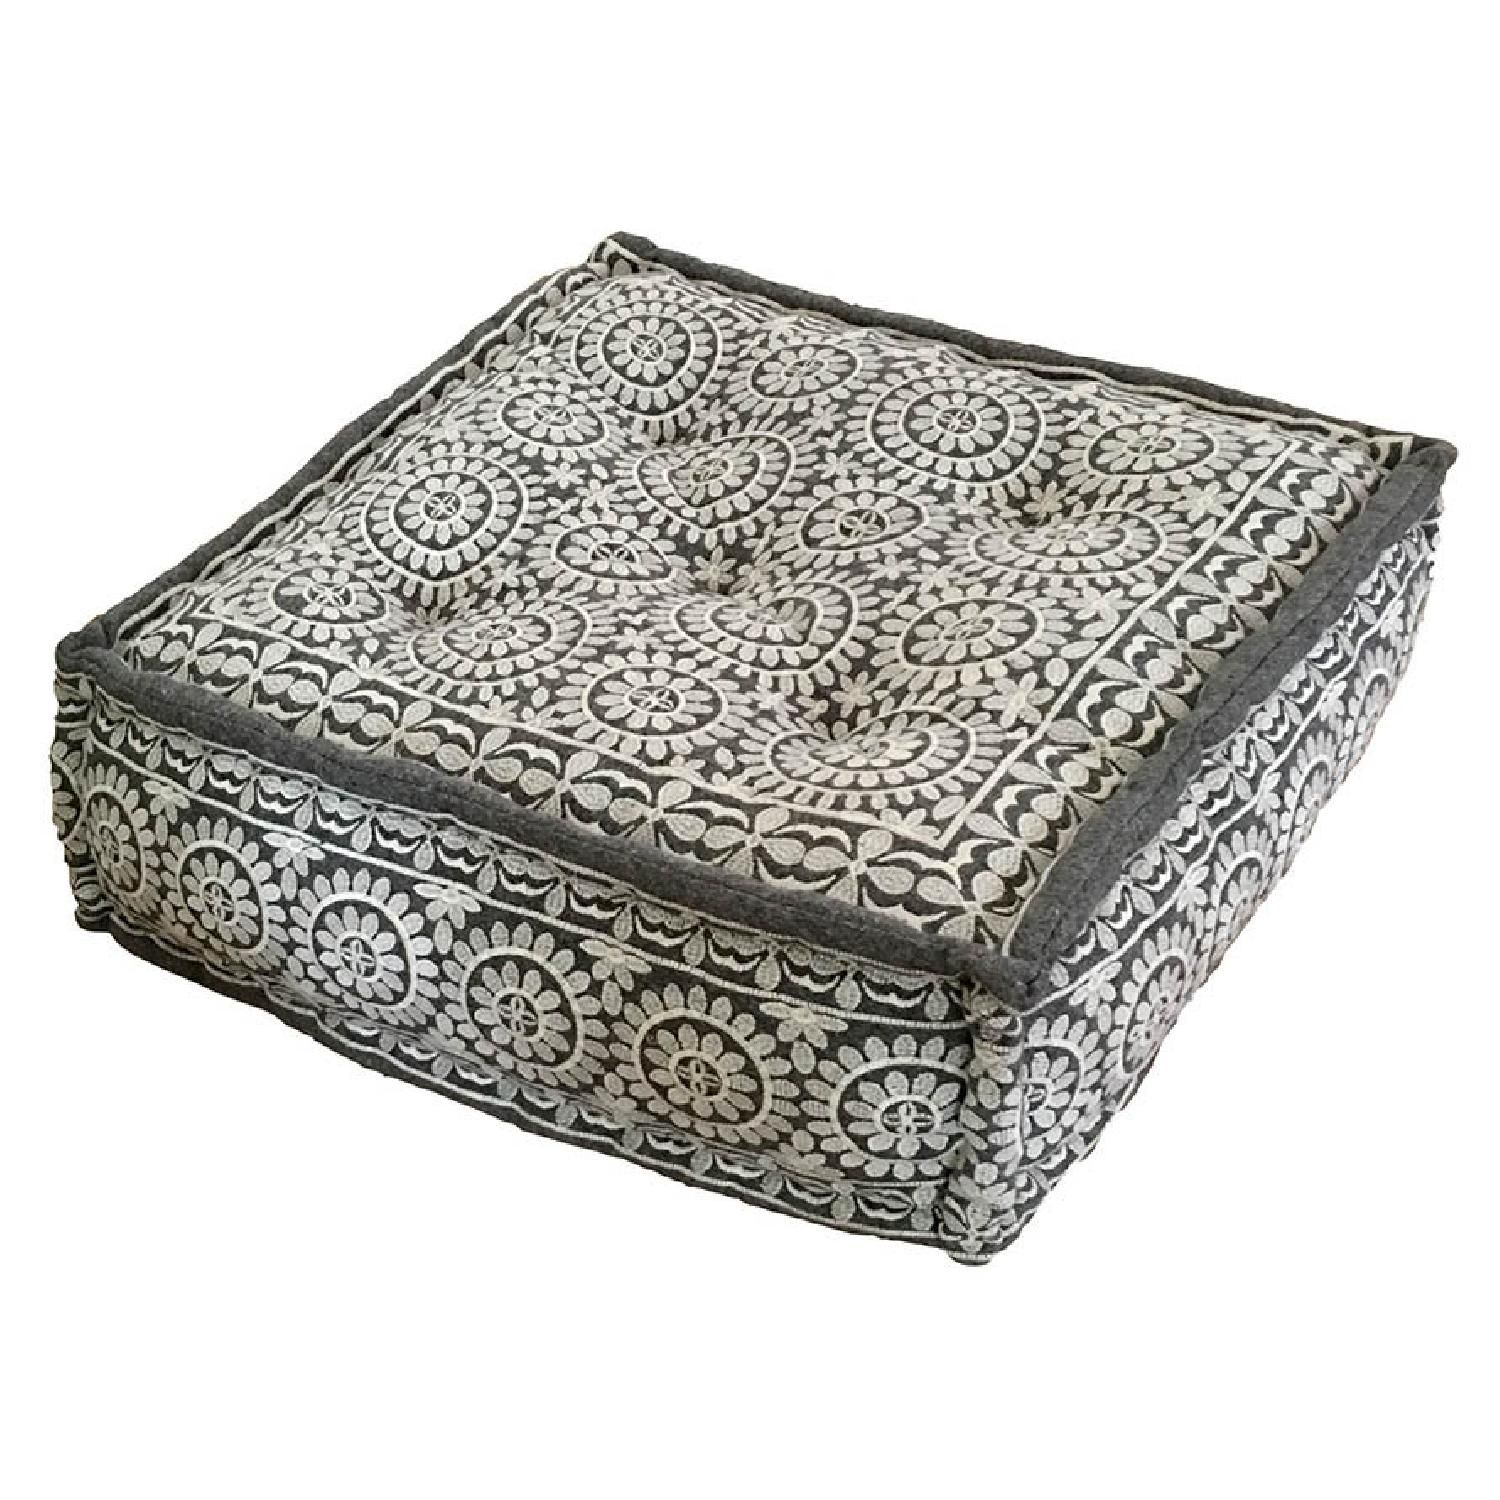 Morrocan Table, Ottoman or more - image-0